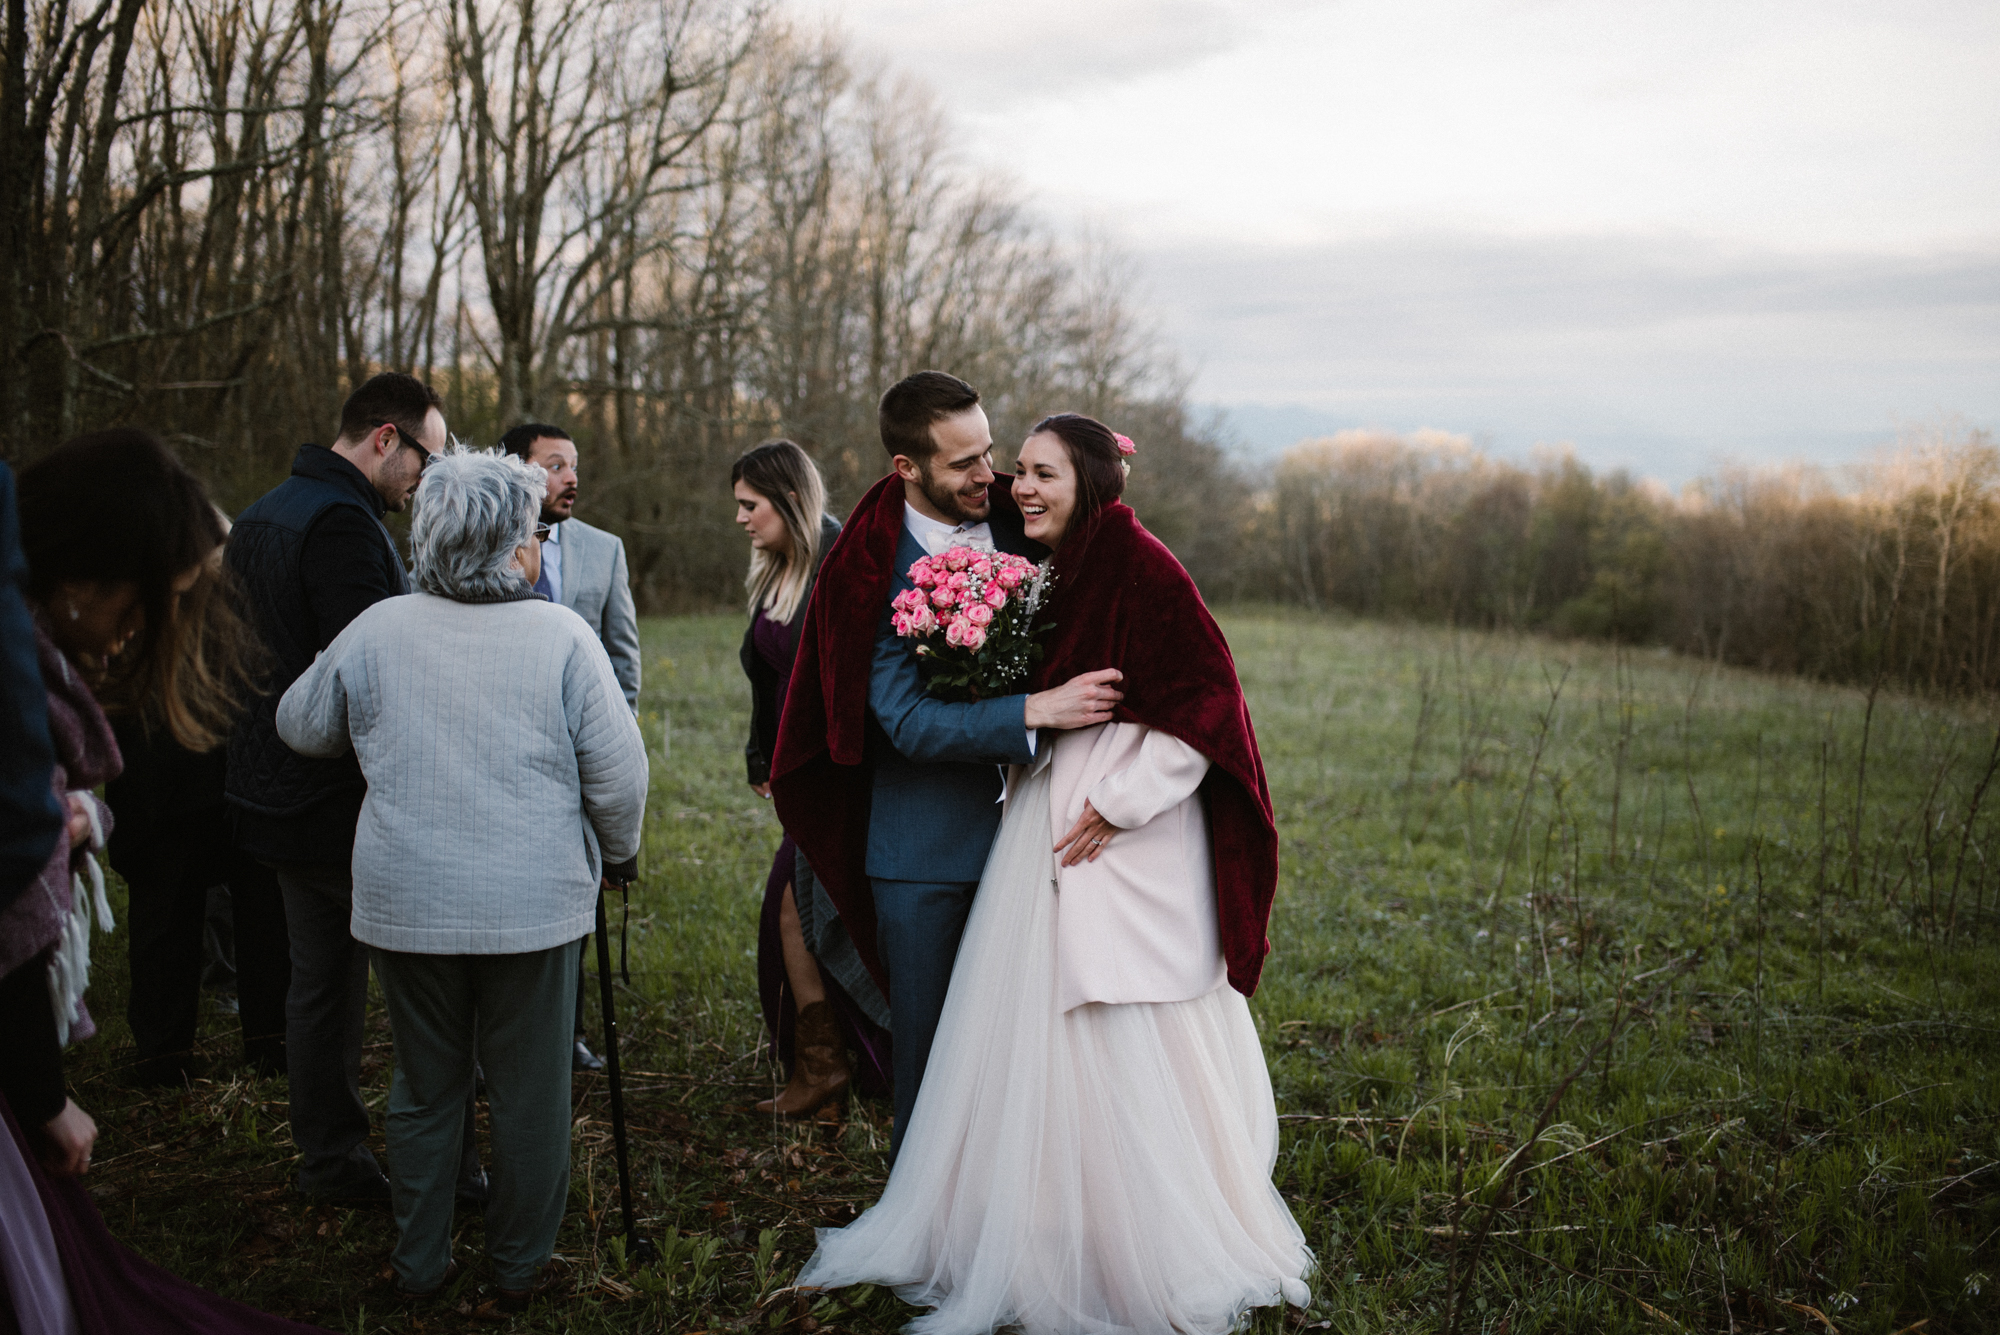 Paula and Andrew - Small Adventurous Wedding in Shenandoah National Park - Blue Ridge Mountain Wedding - White Sails Creative - Mountain Elopement_26.jpg